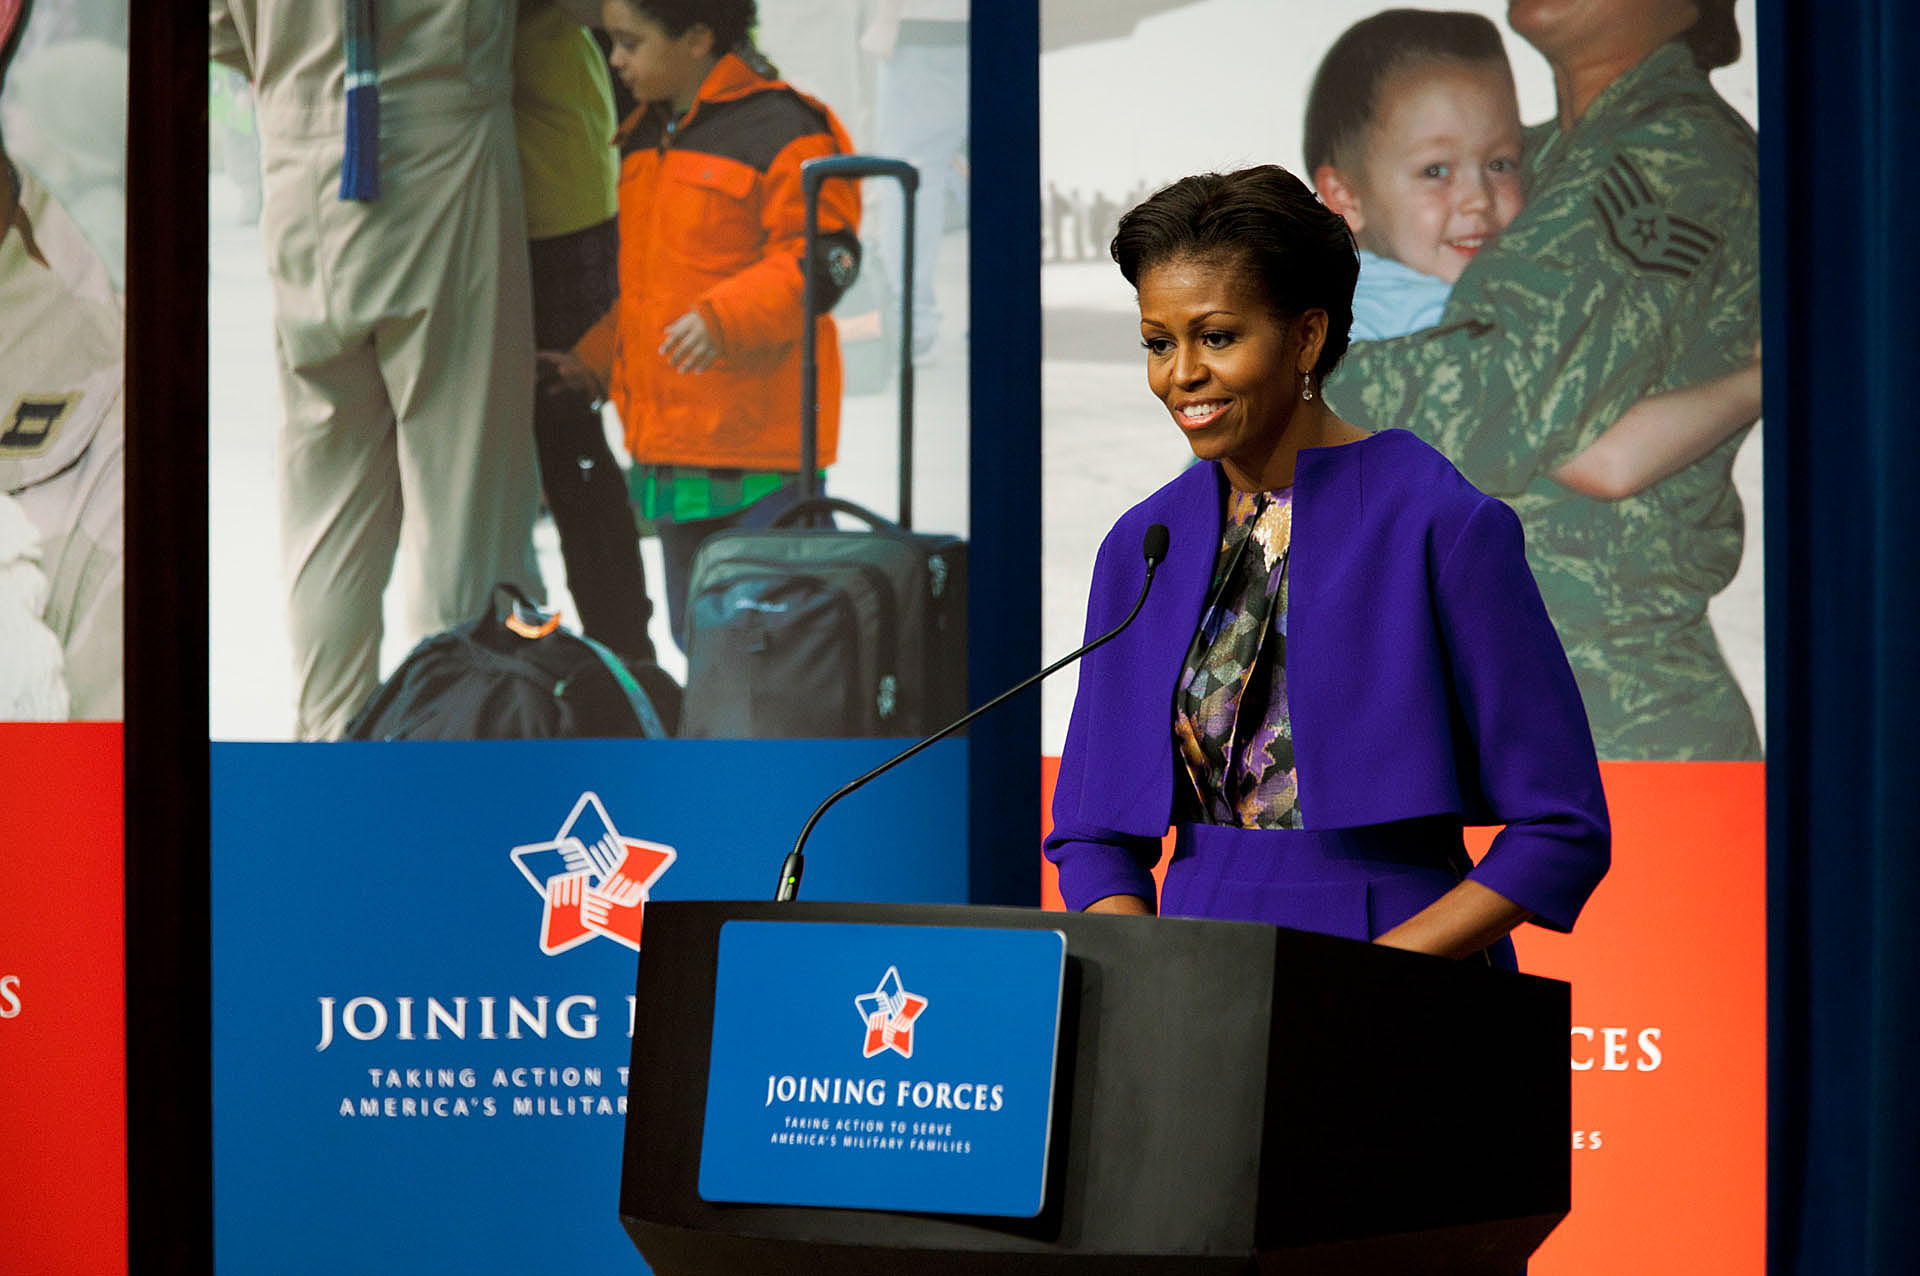 First Lady Michelle Obama announces new FMLA rules proposed to help caregivers of service members and veterans